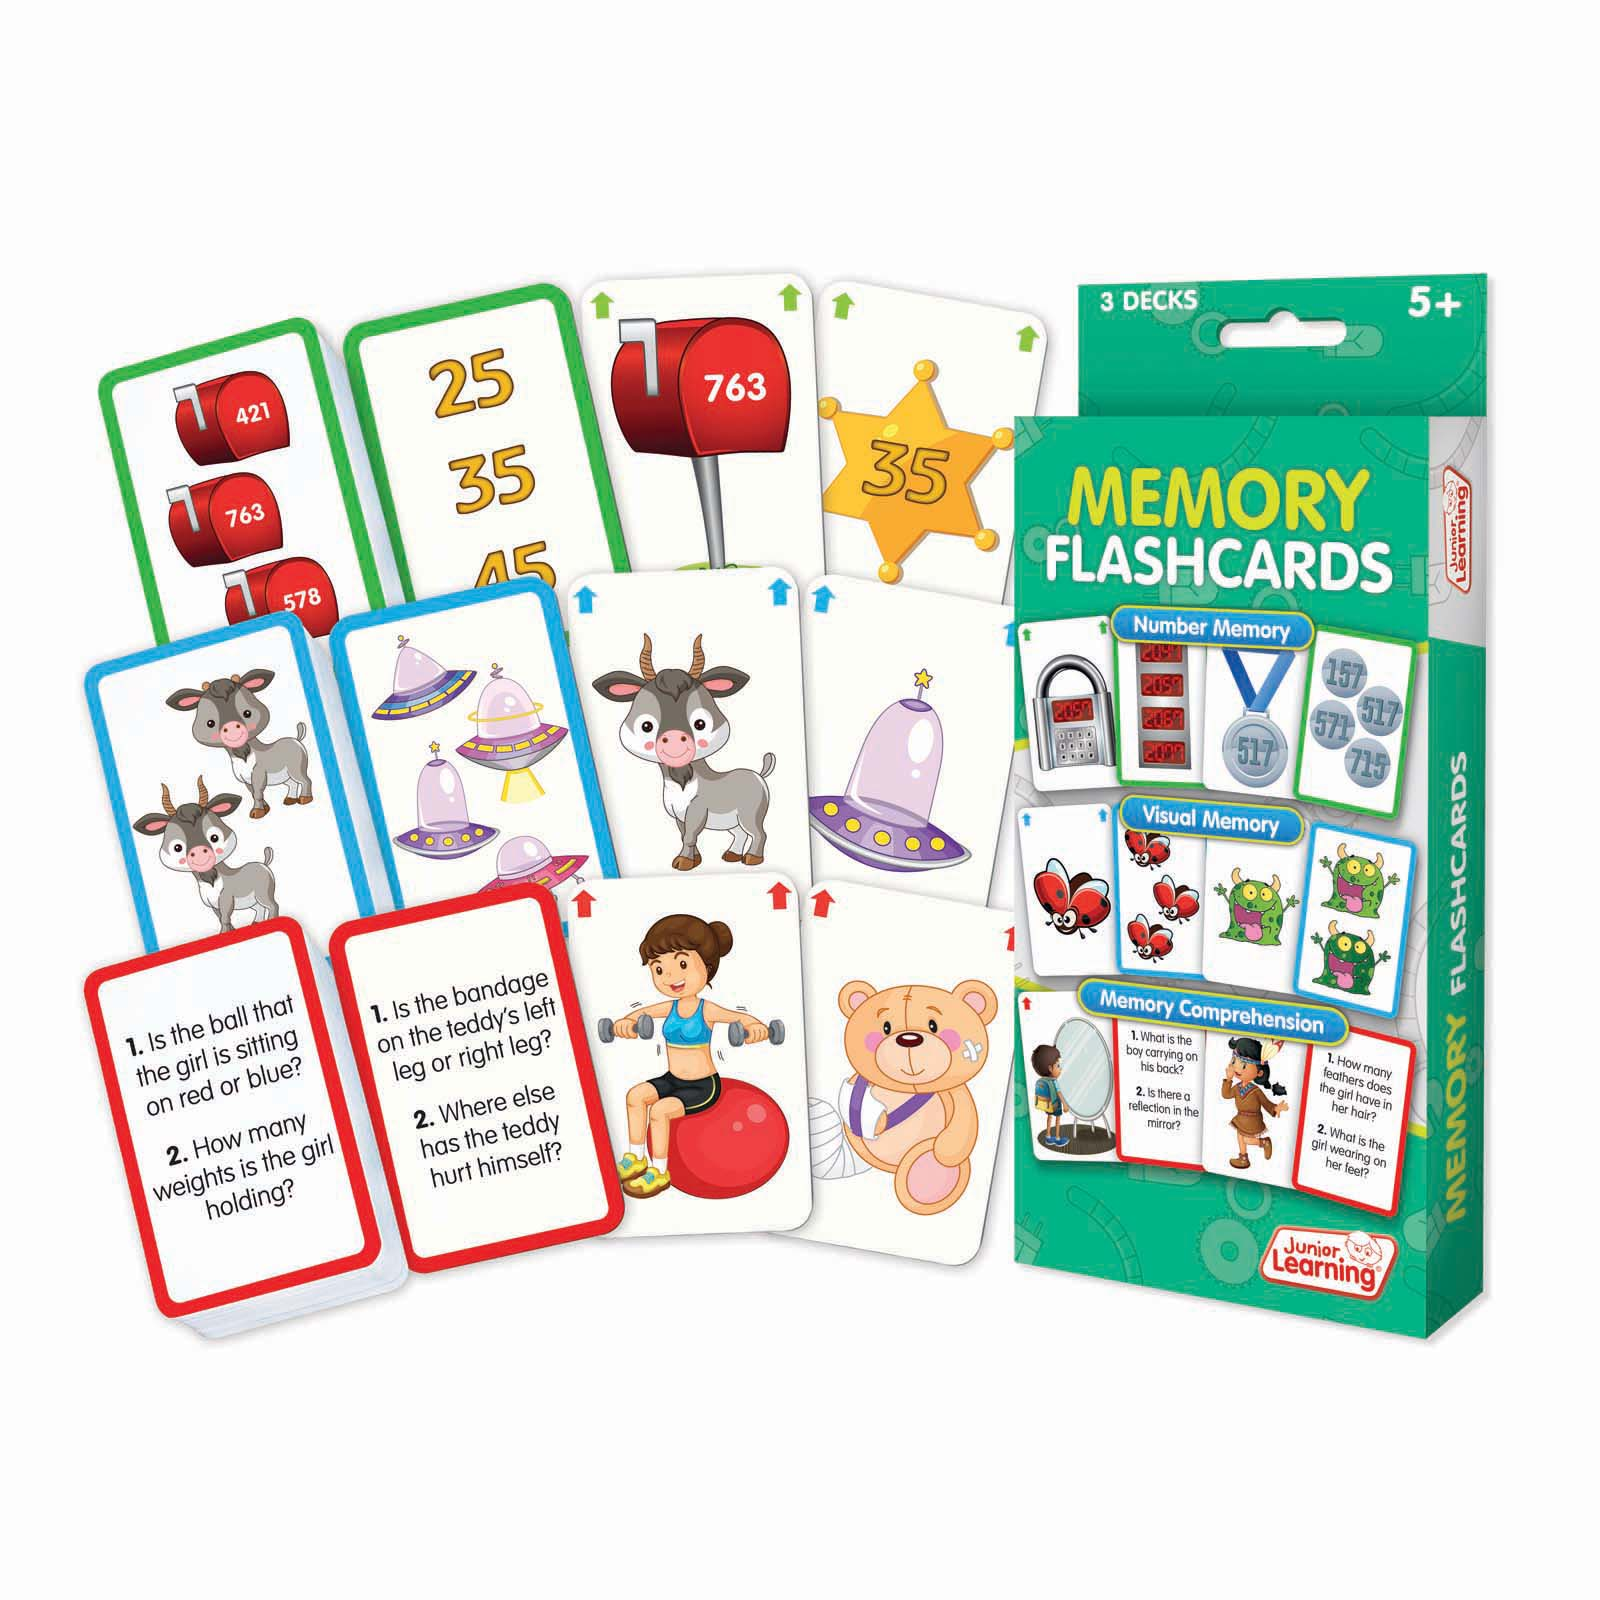 Junior Learning Memory Flashcards Educational Set Number